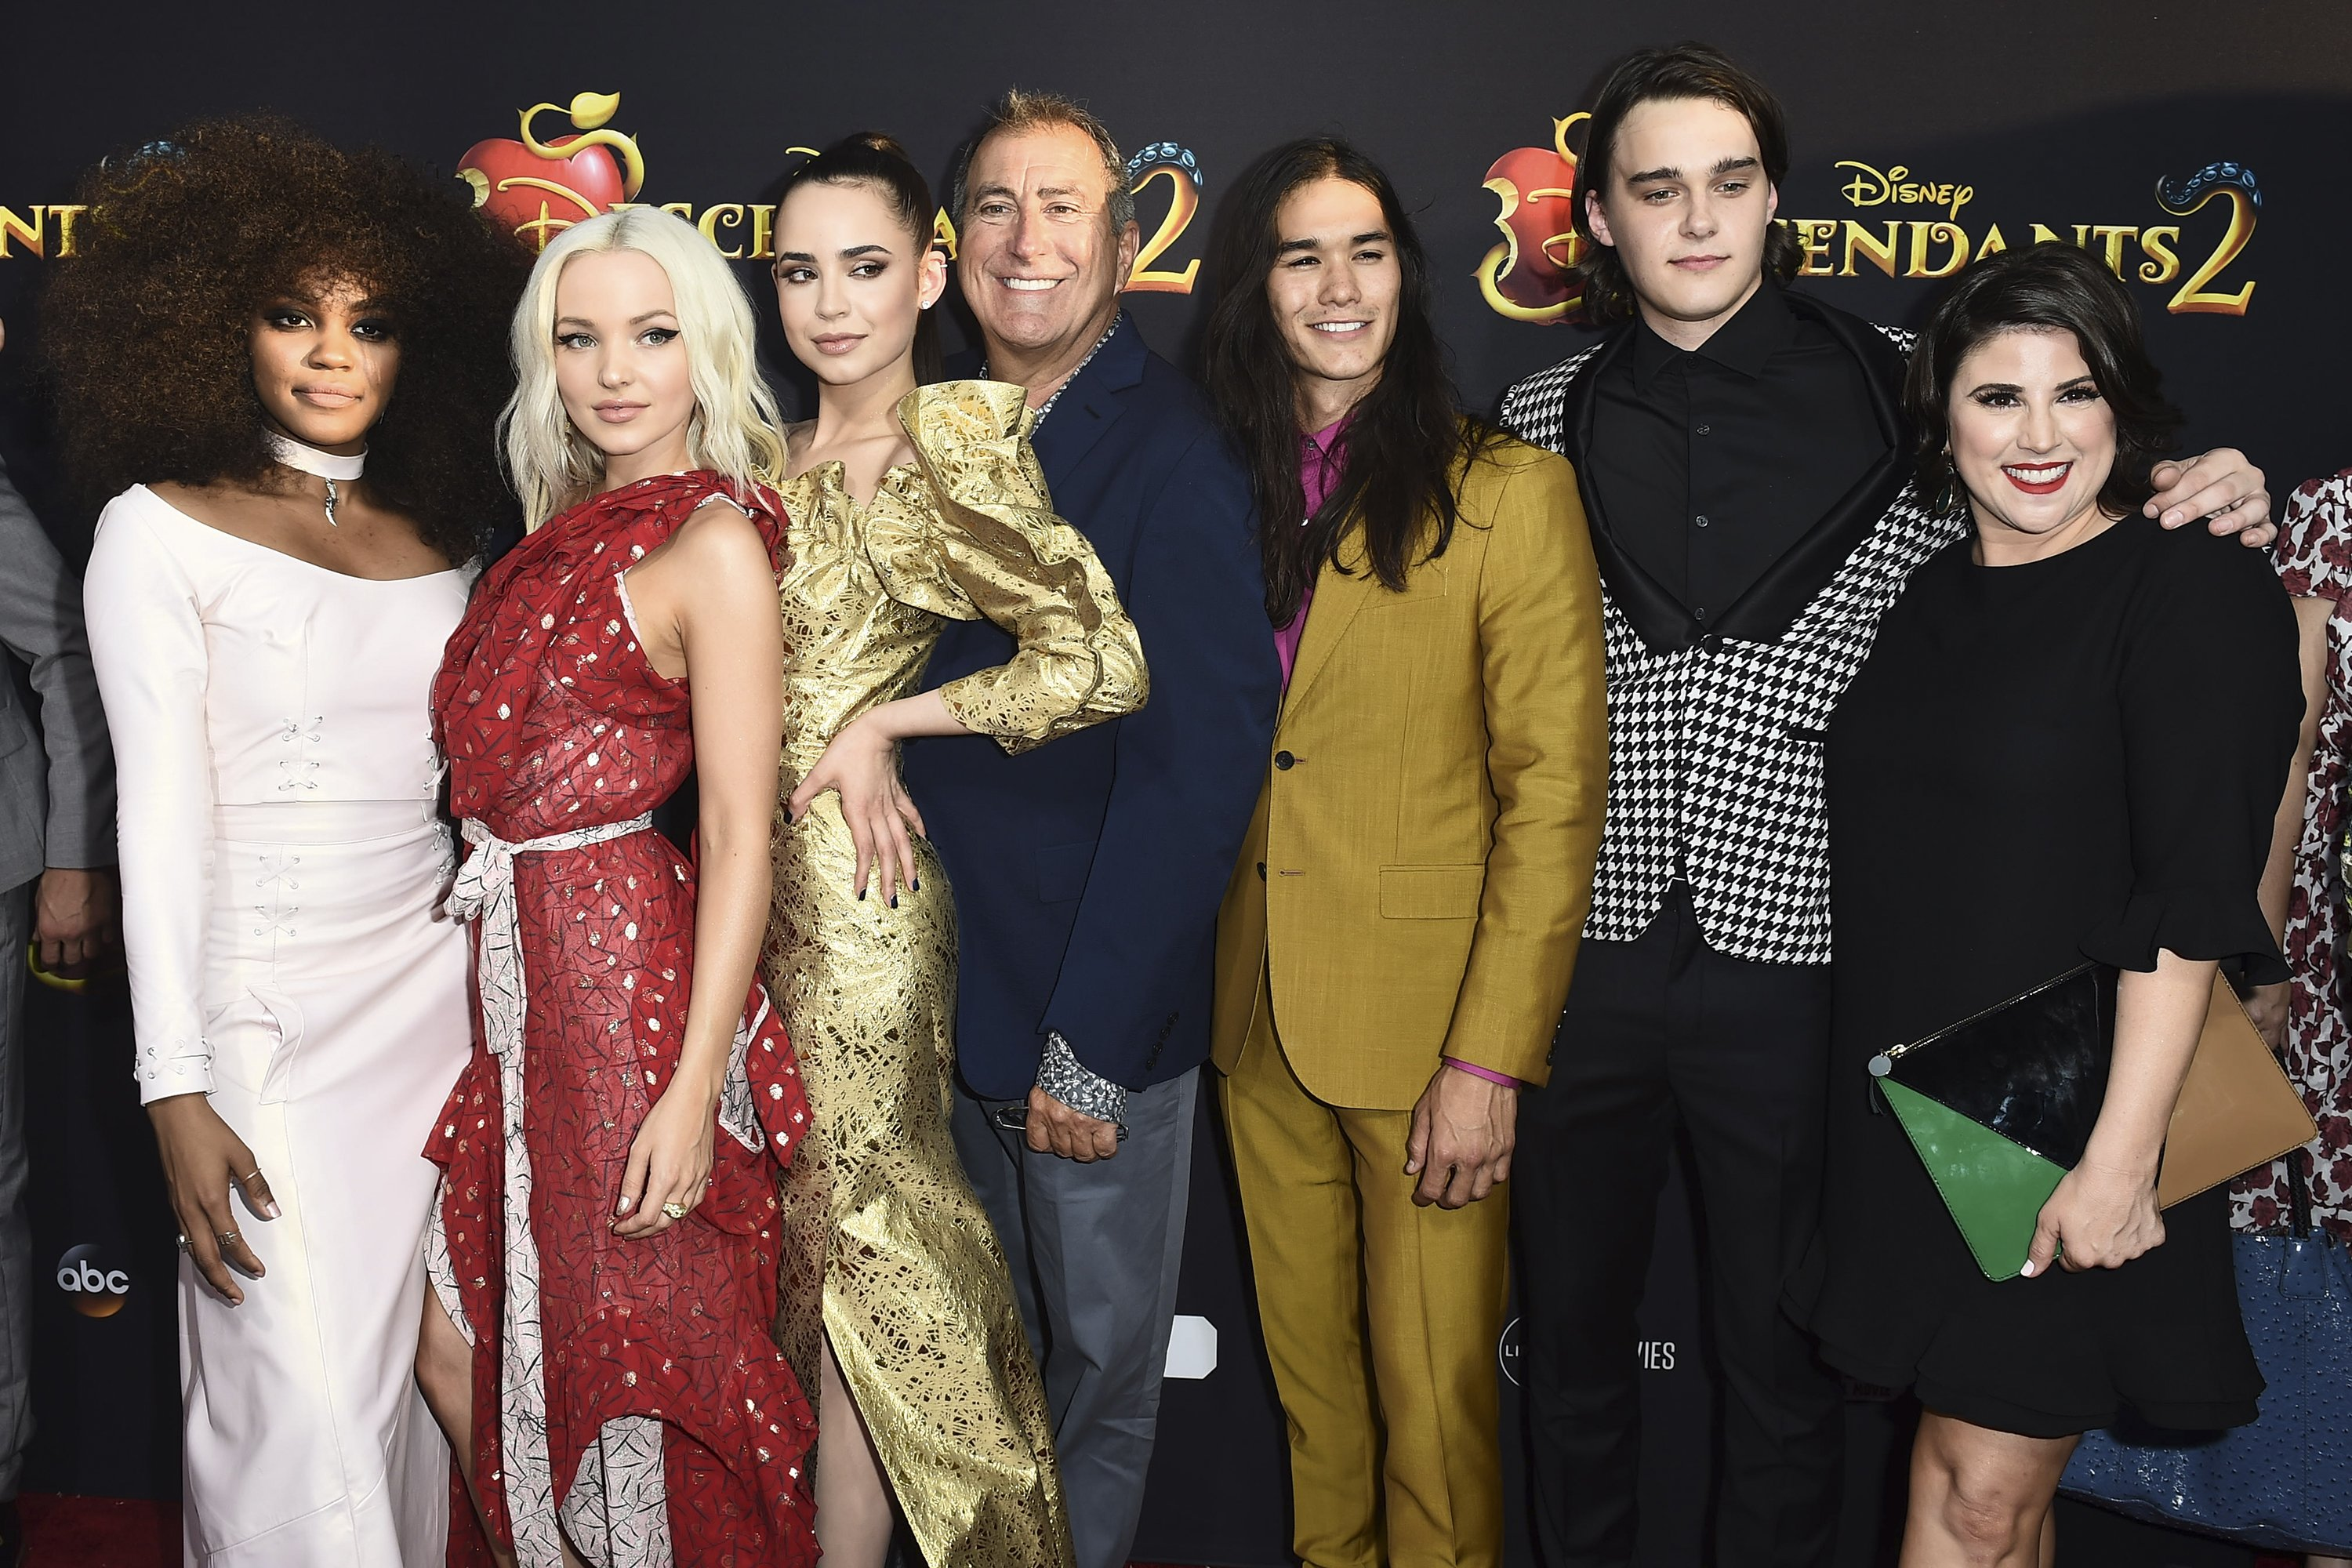 The cast of Descendants at the premiere of Descendants 2 / CC BY-ND 2.0 / Walt Disney Television / flickr